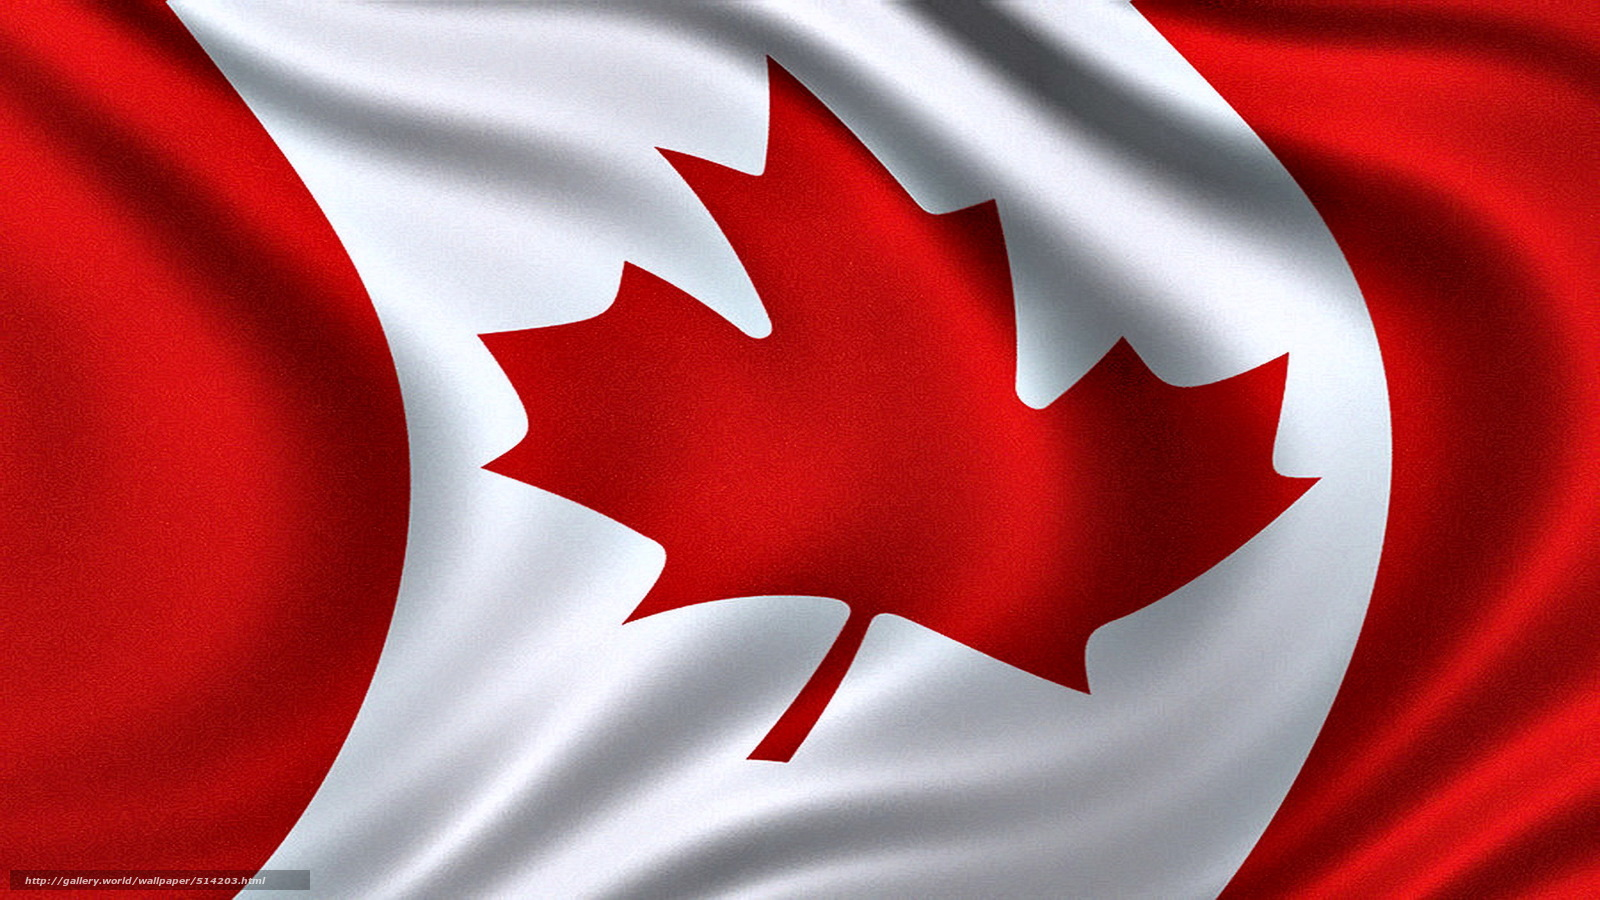 download wallpaper flag of canada the canadian flag canadian